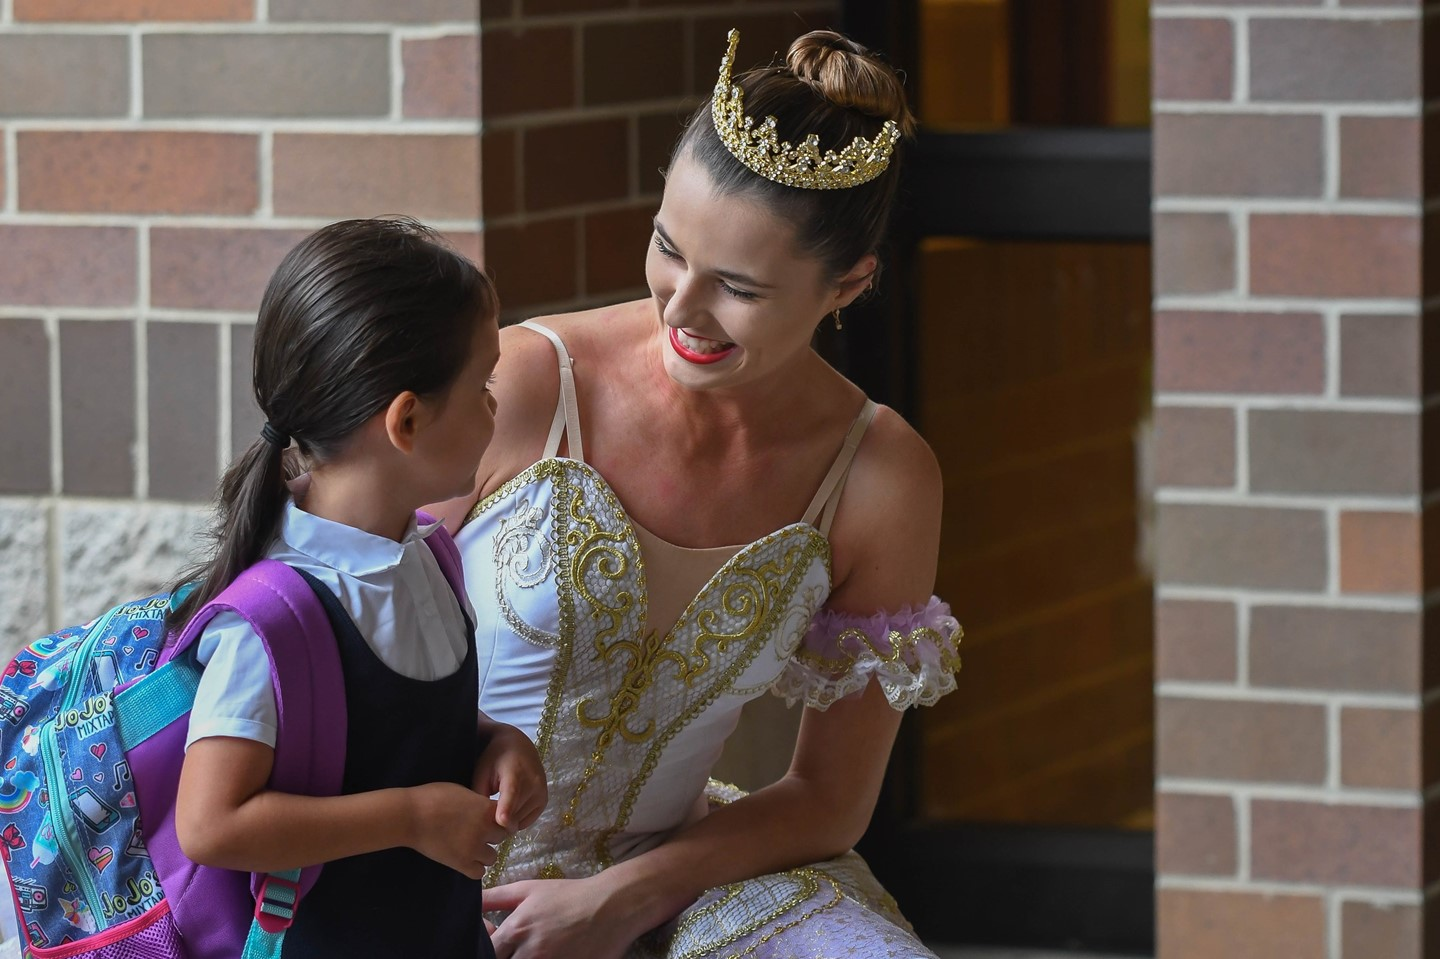 A ballet dancer welcomes a young scholar on the first day of school